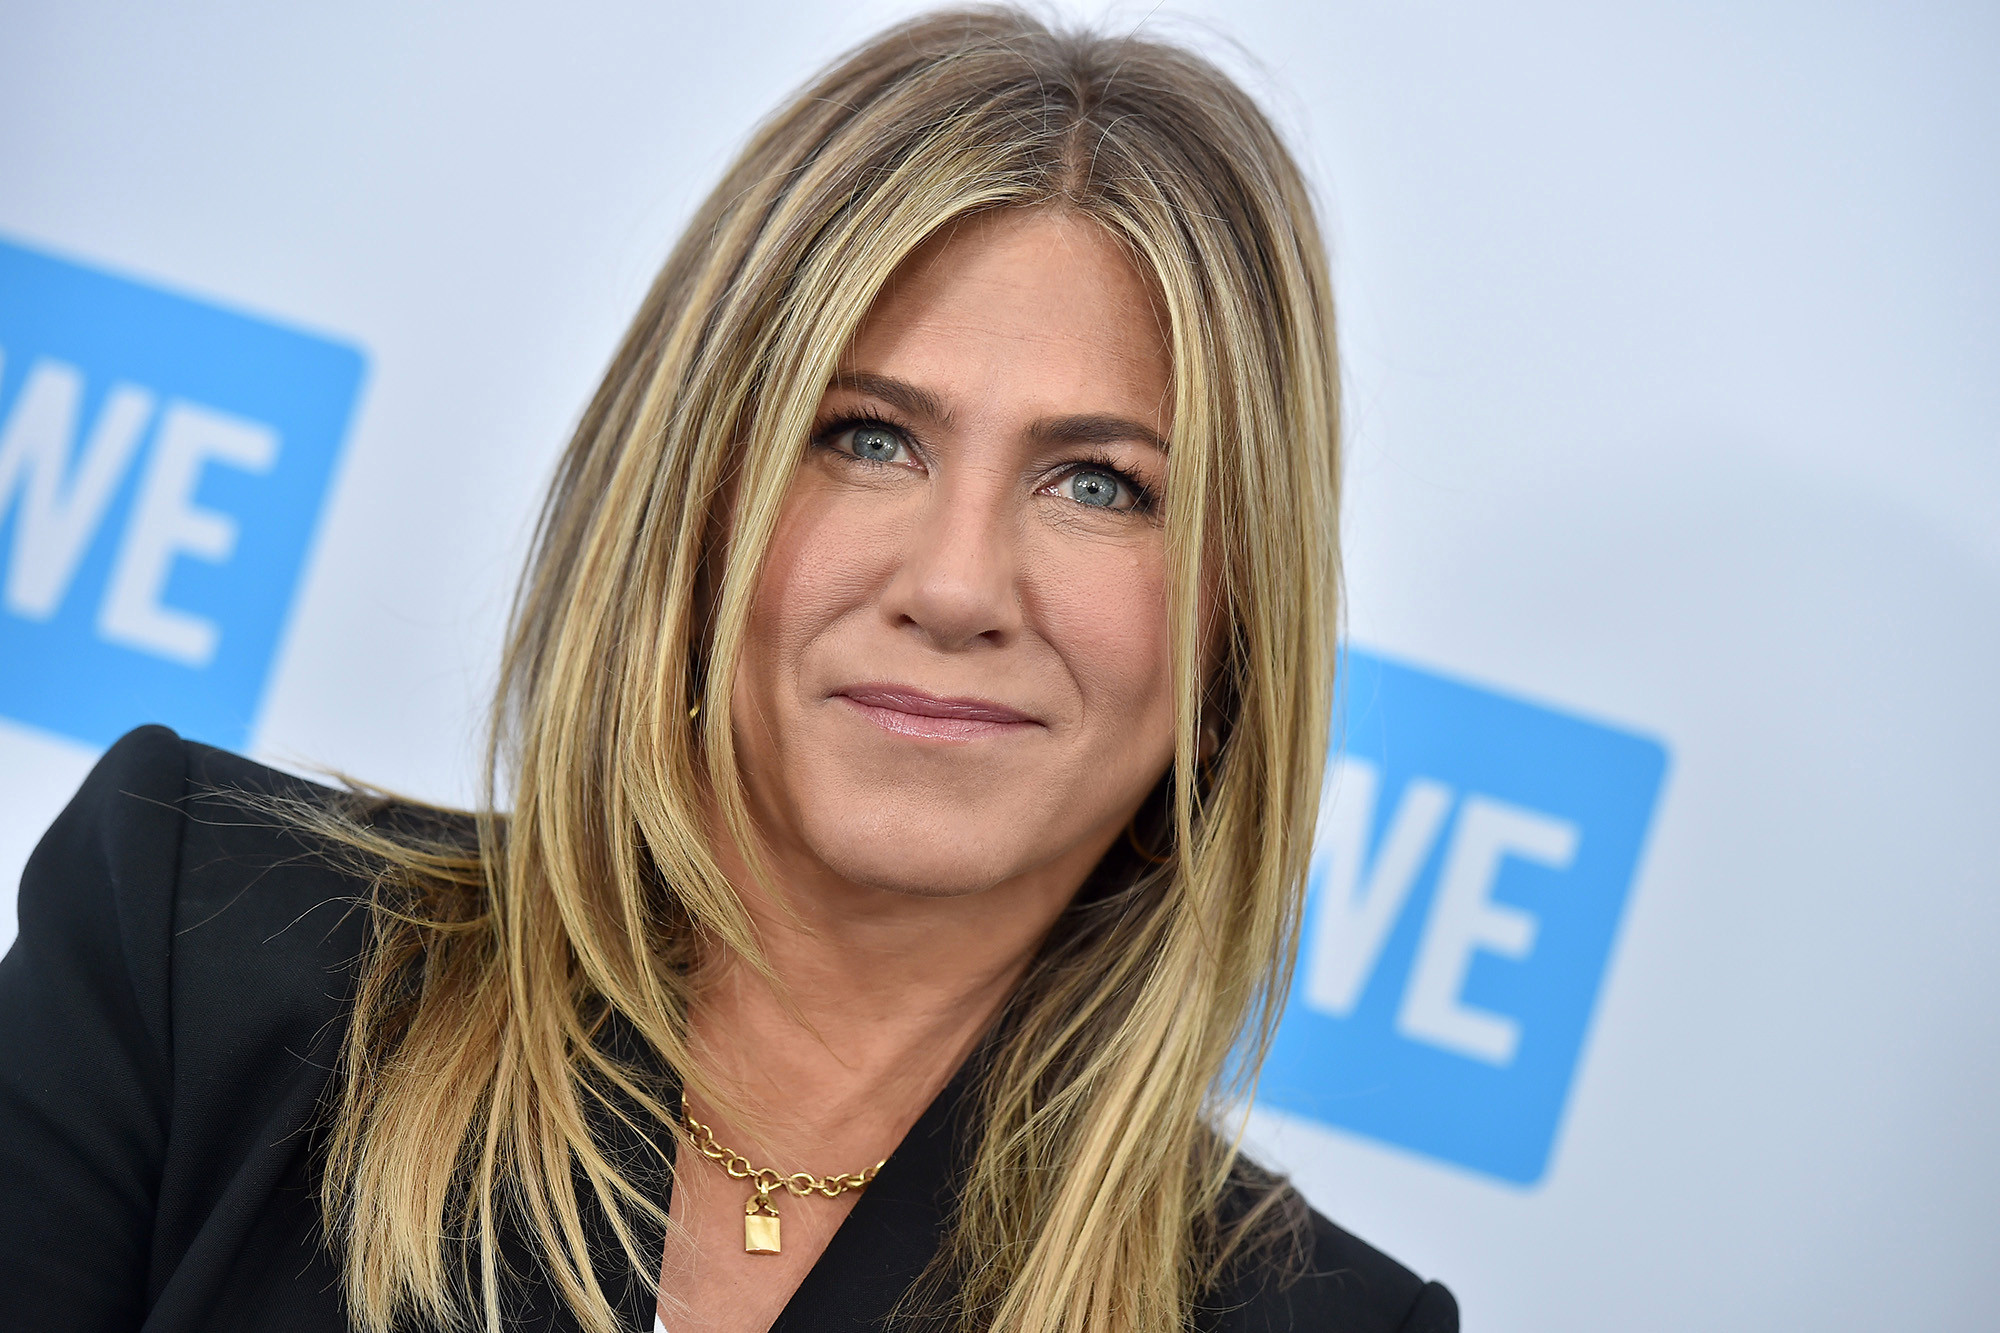 Jennifer Aniston says her marriages were 'very successful'